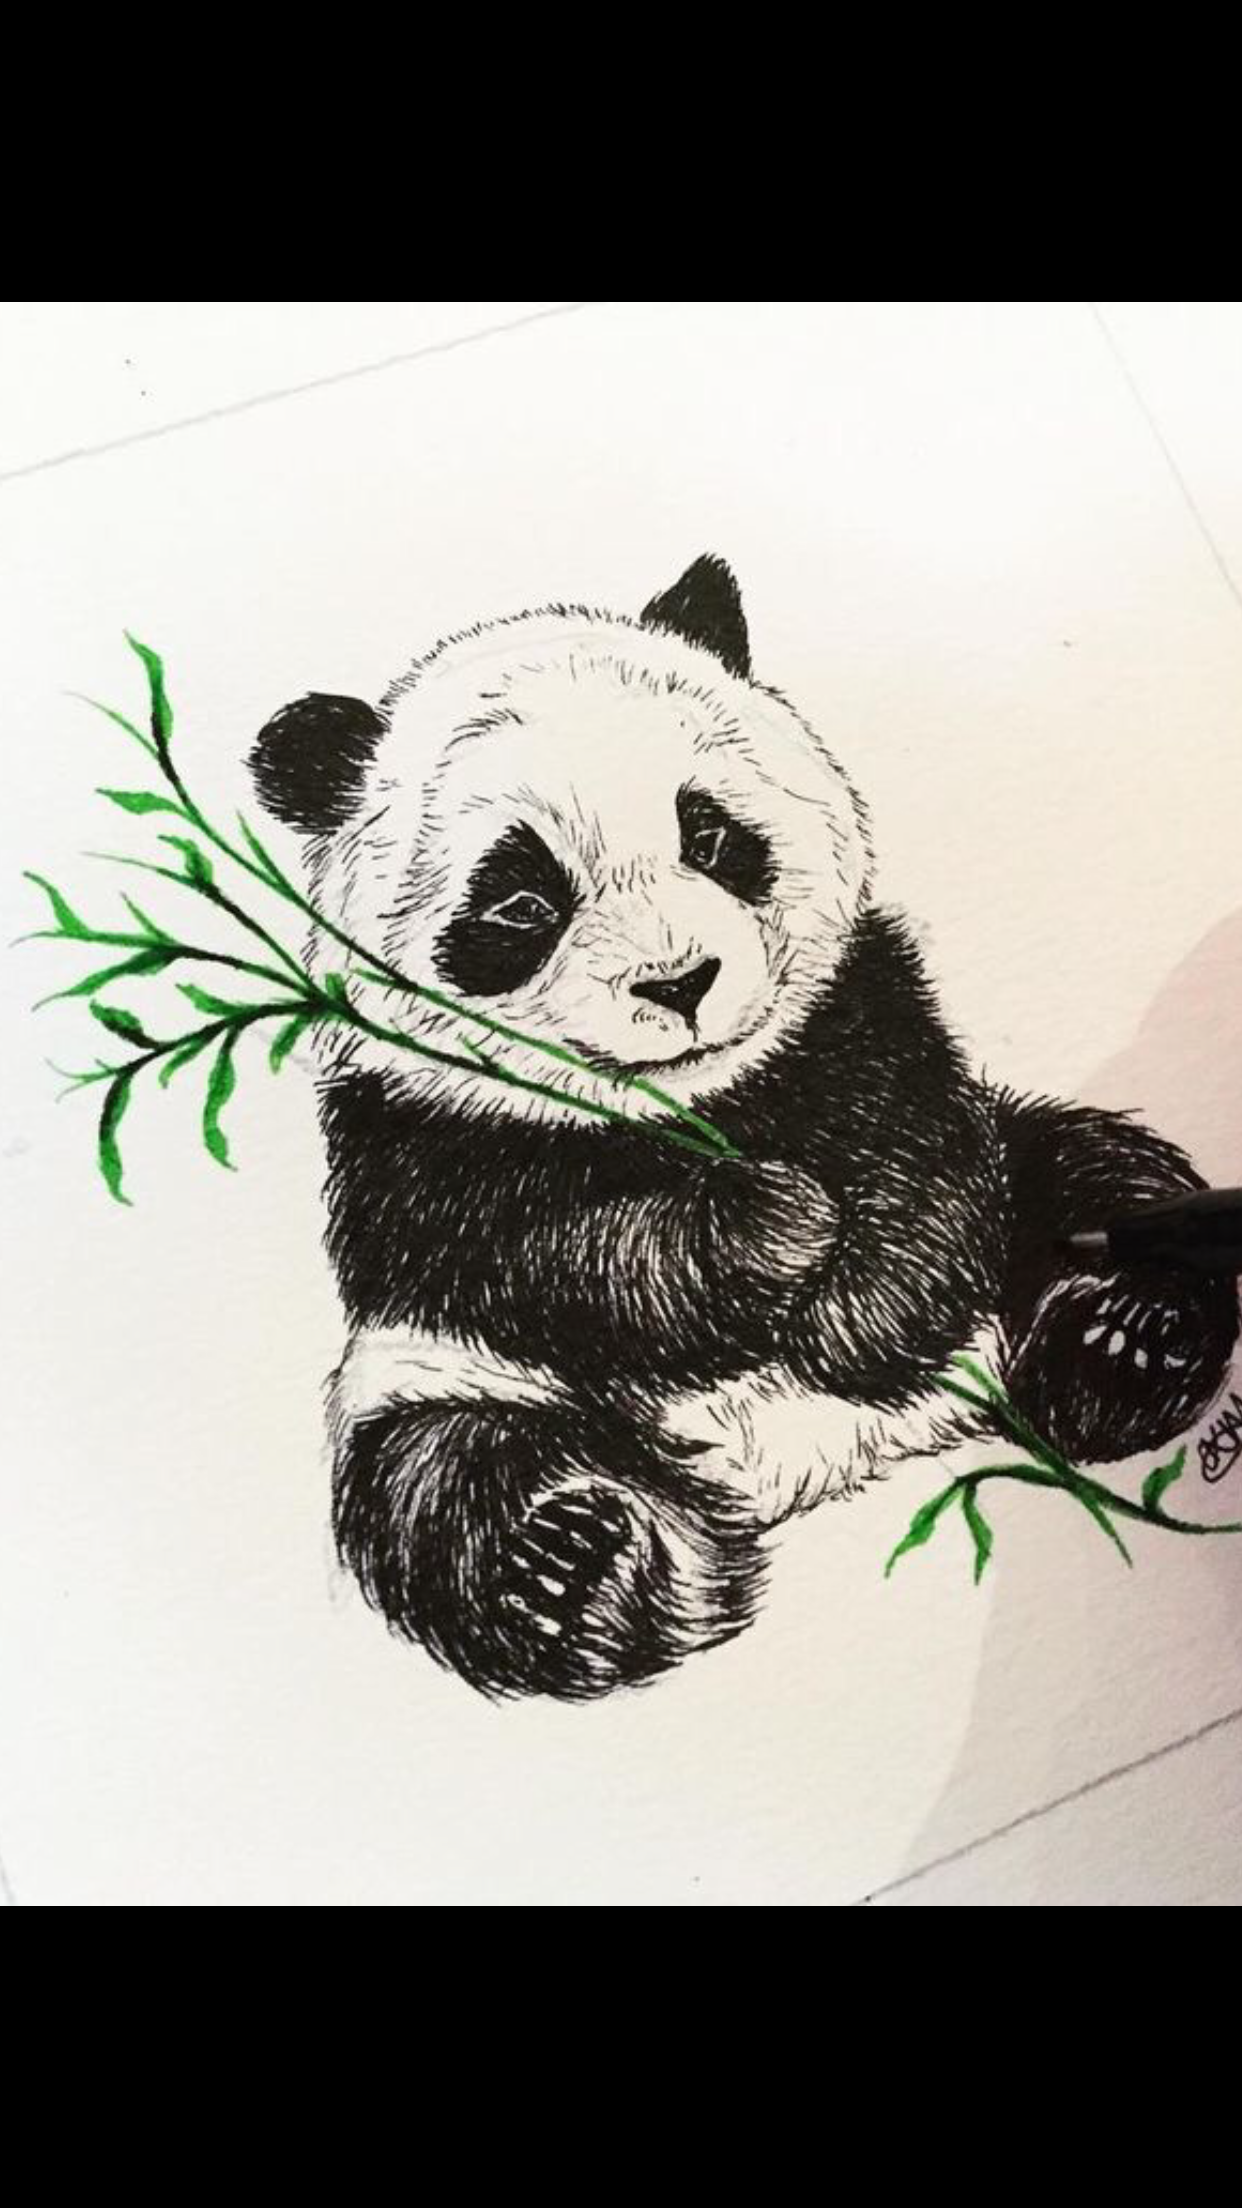 Panda Eating Bamboo Illustration